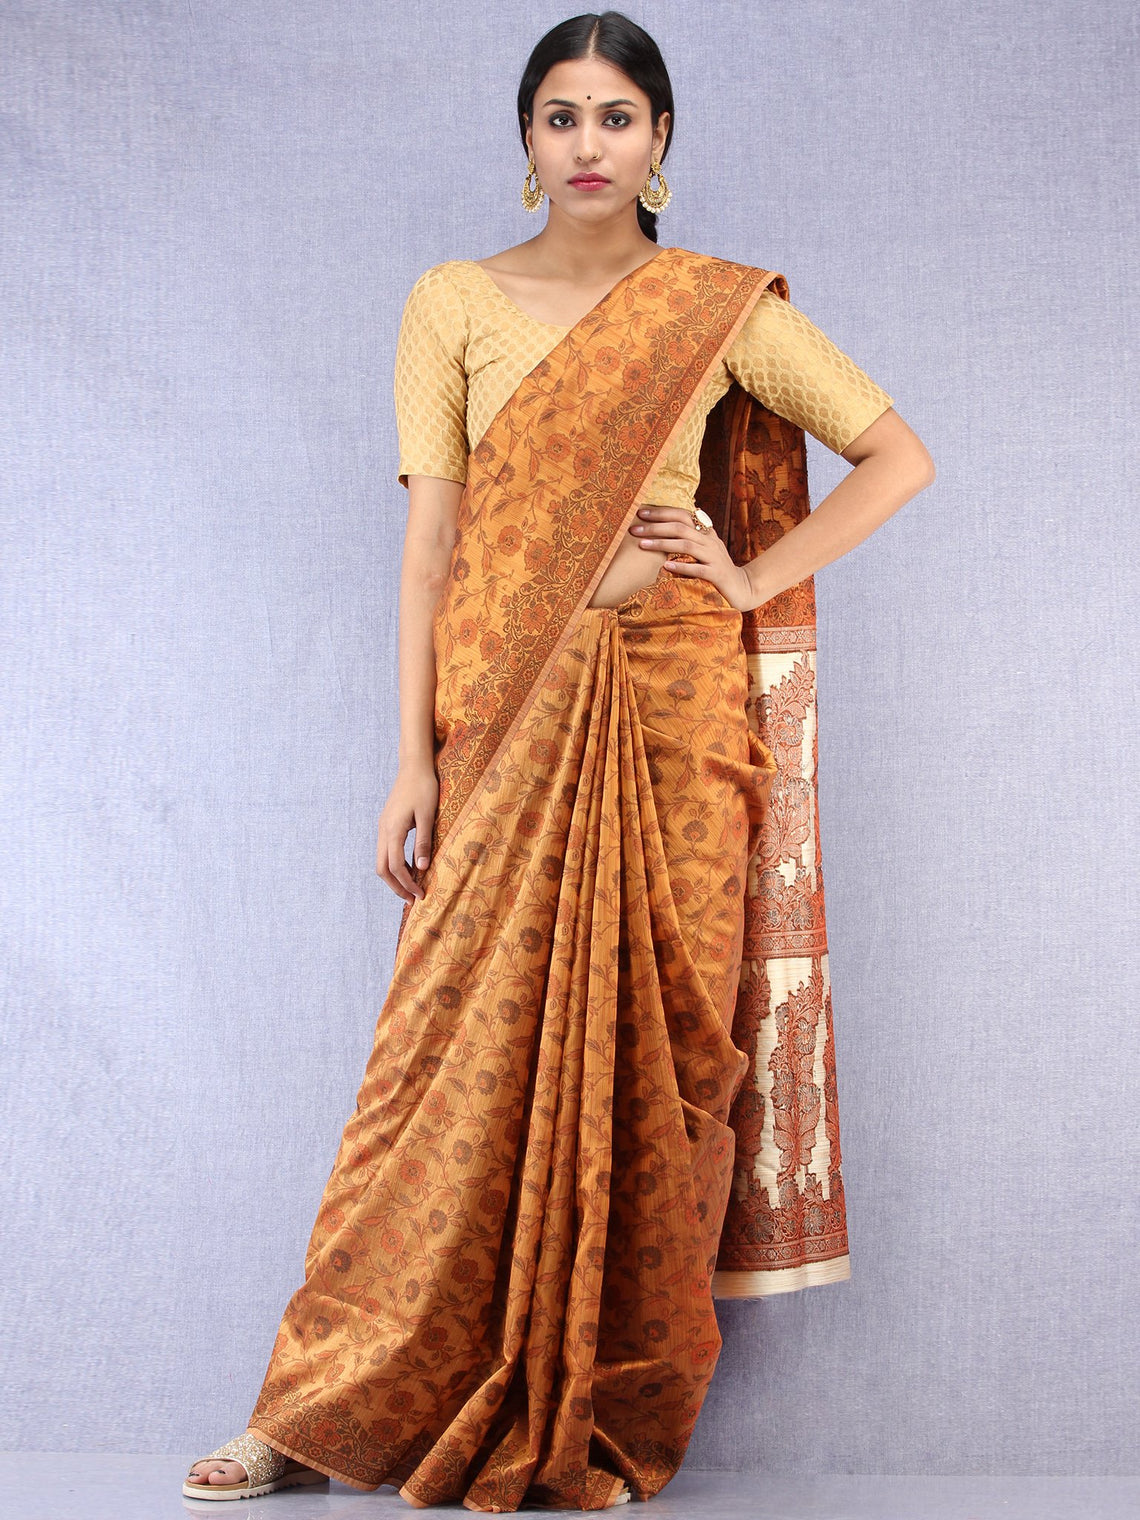 Banarasee Art Silk Saree With Resham Weaving Work - Mustard Yellow & Beige - S031704424